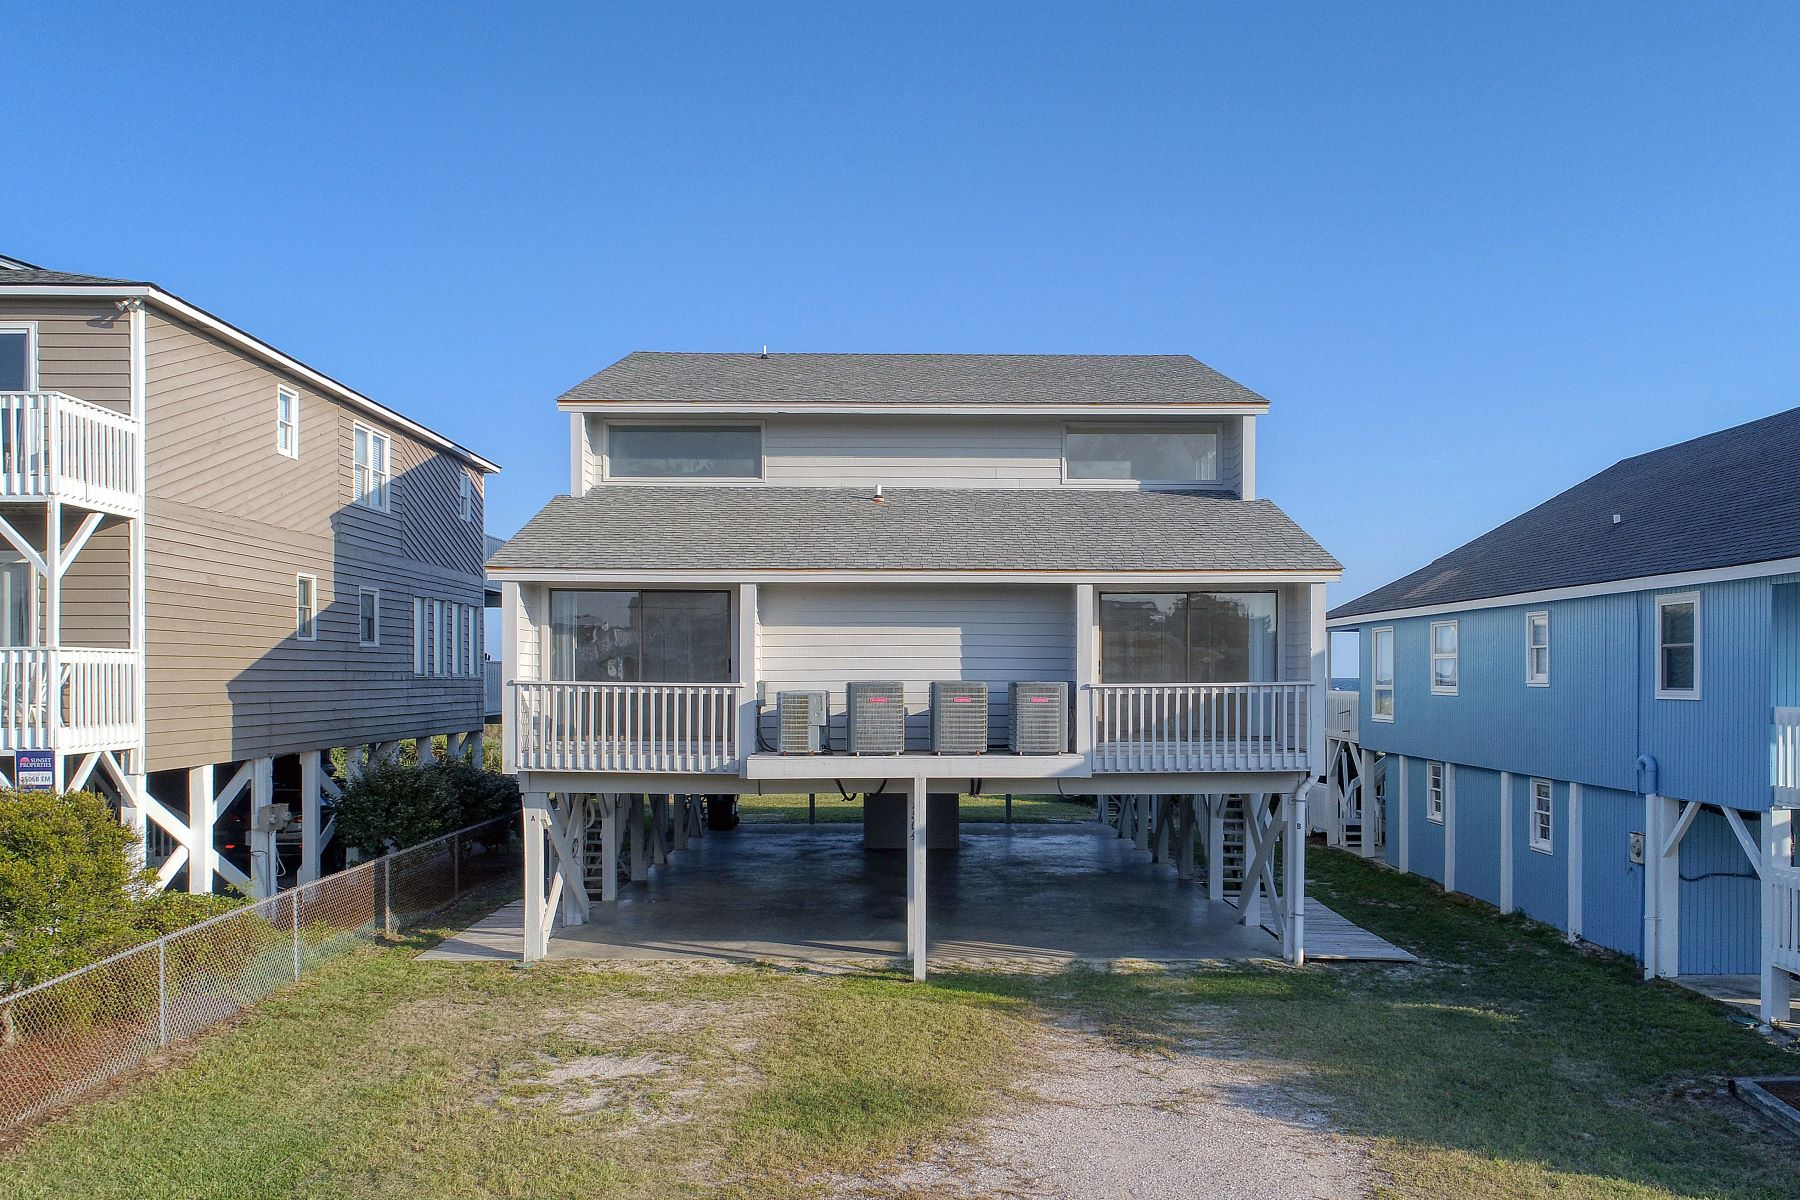 Single Family Homes for Active at Ocean Front on Sunset Beach 1504 E Main St A Sunset Beach, North Carolina 28468 United States